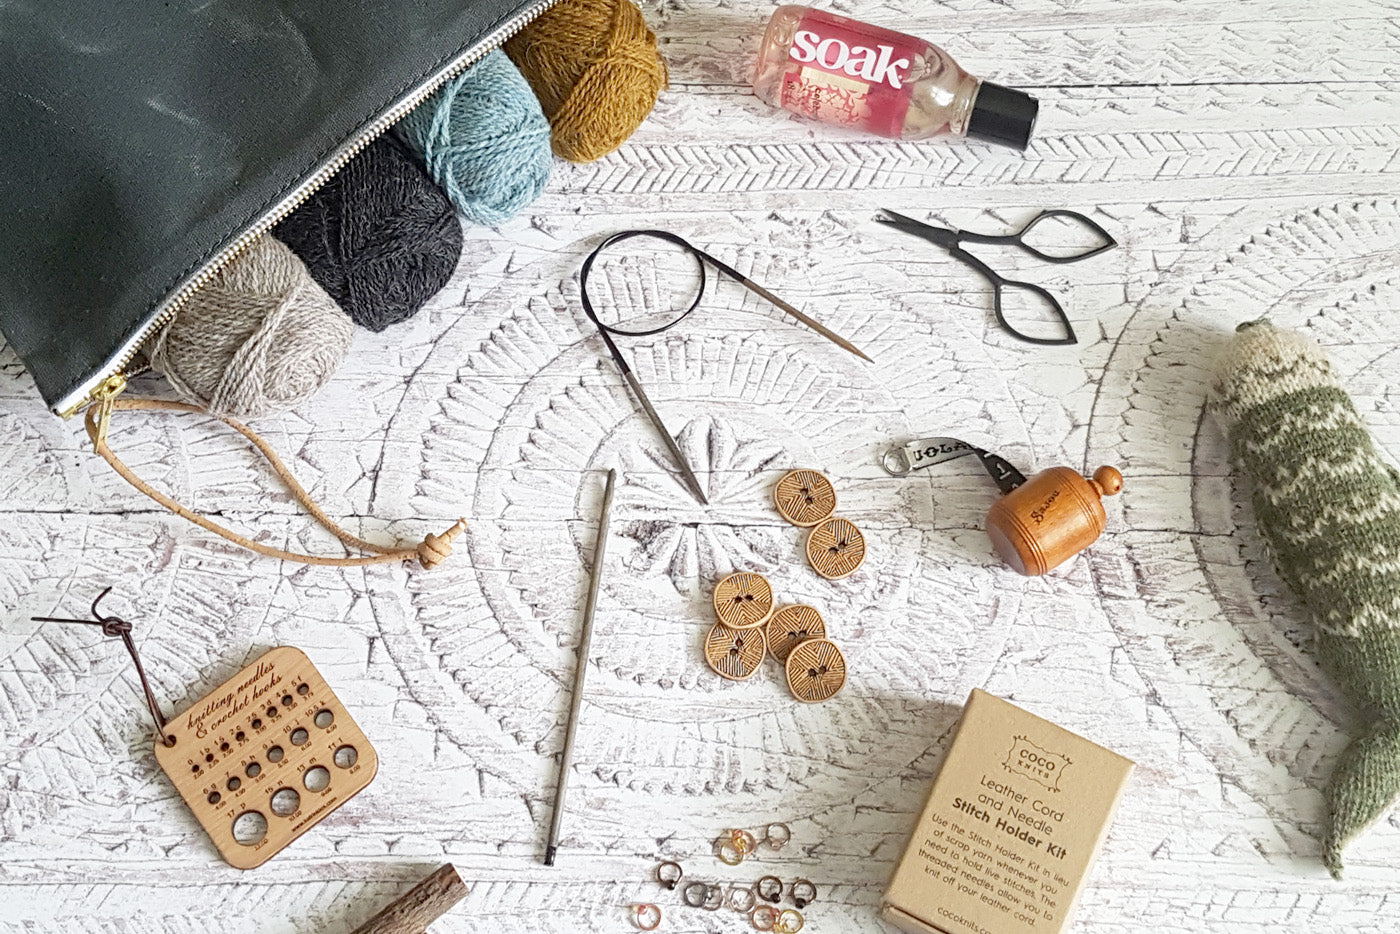 Knitting Tools, Yarns, & Unique Gifts for Knitters at High Fibre Shop